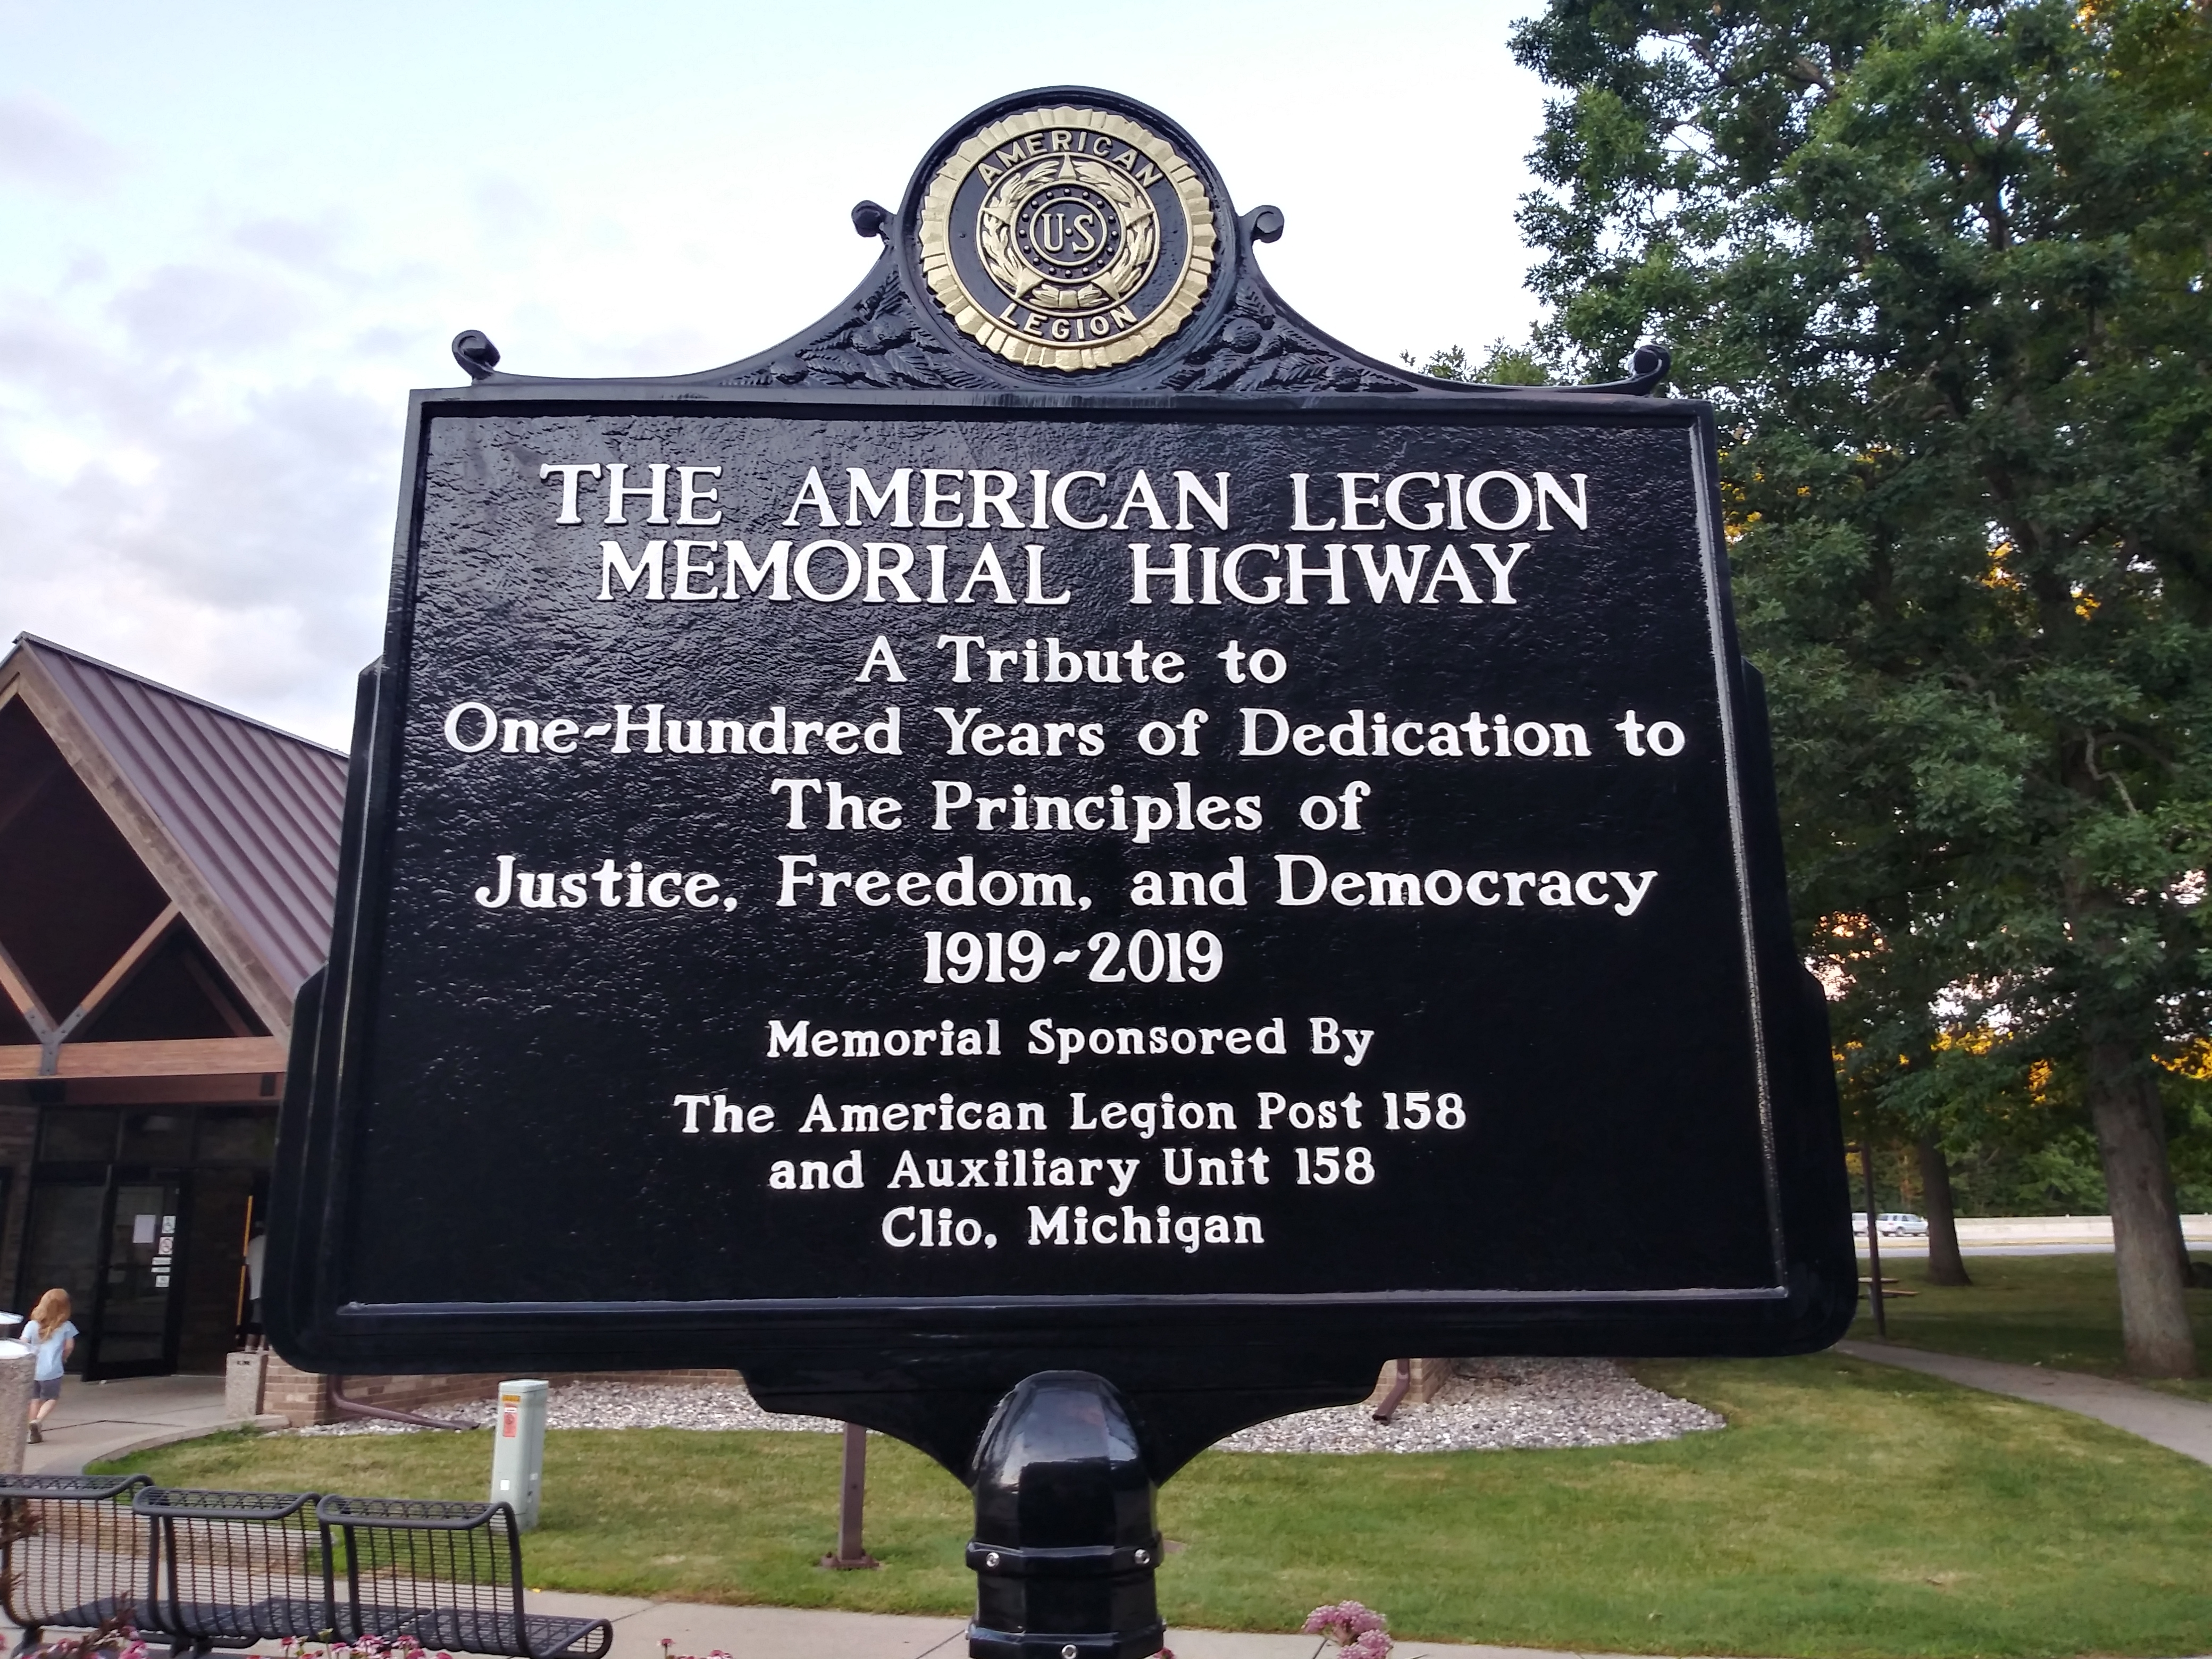 The American Legion Memorial Highway Marker